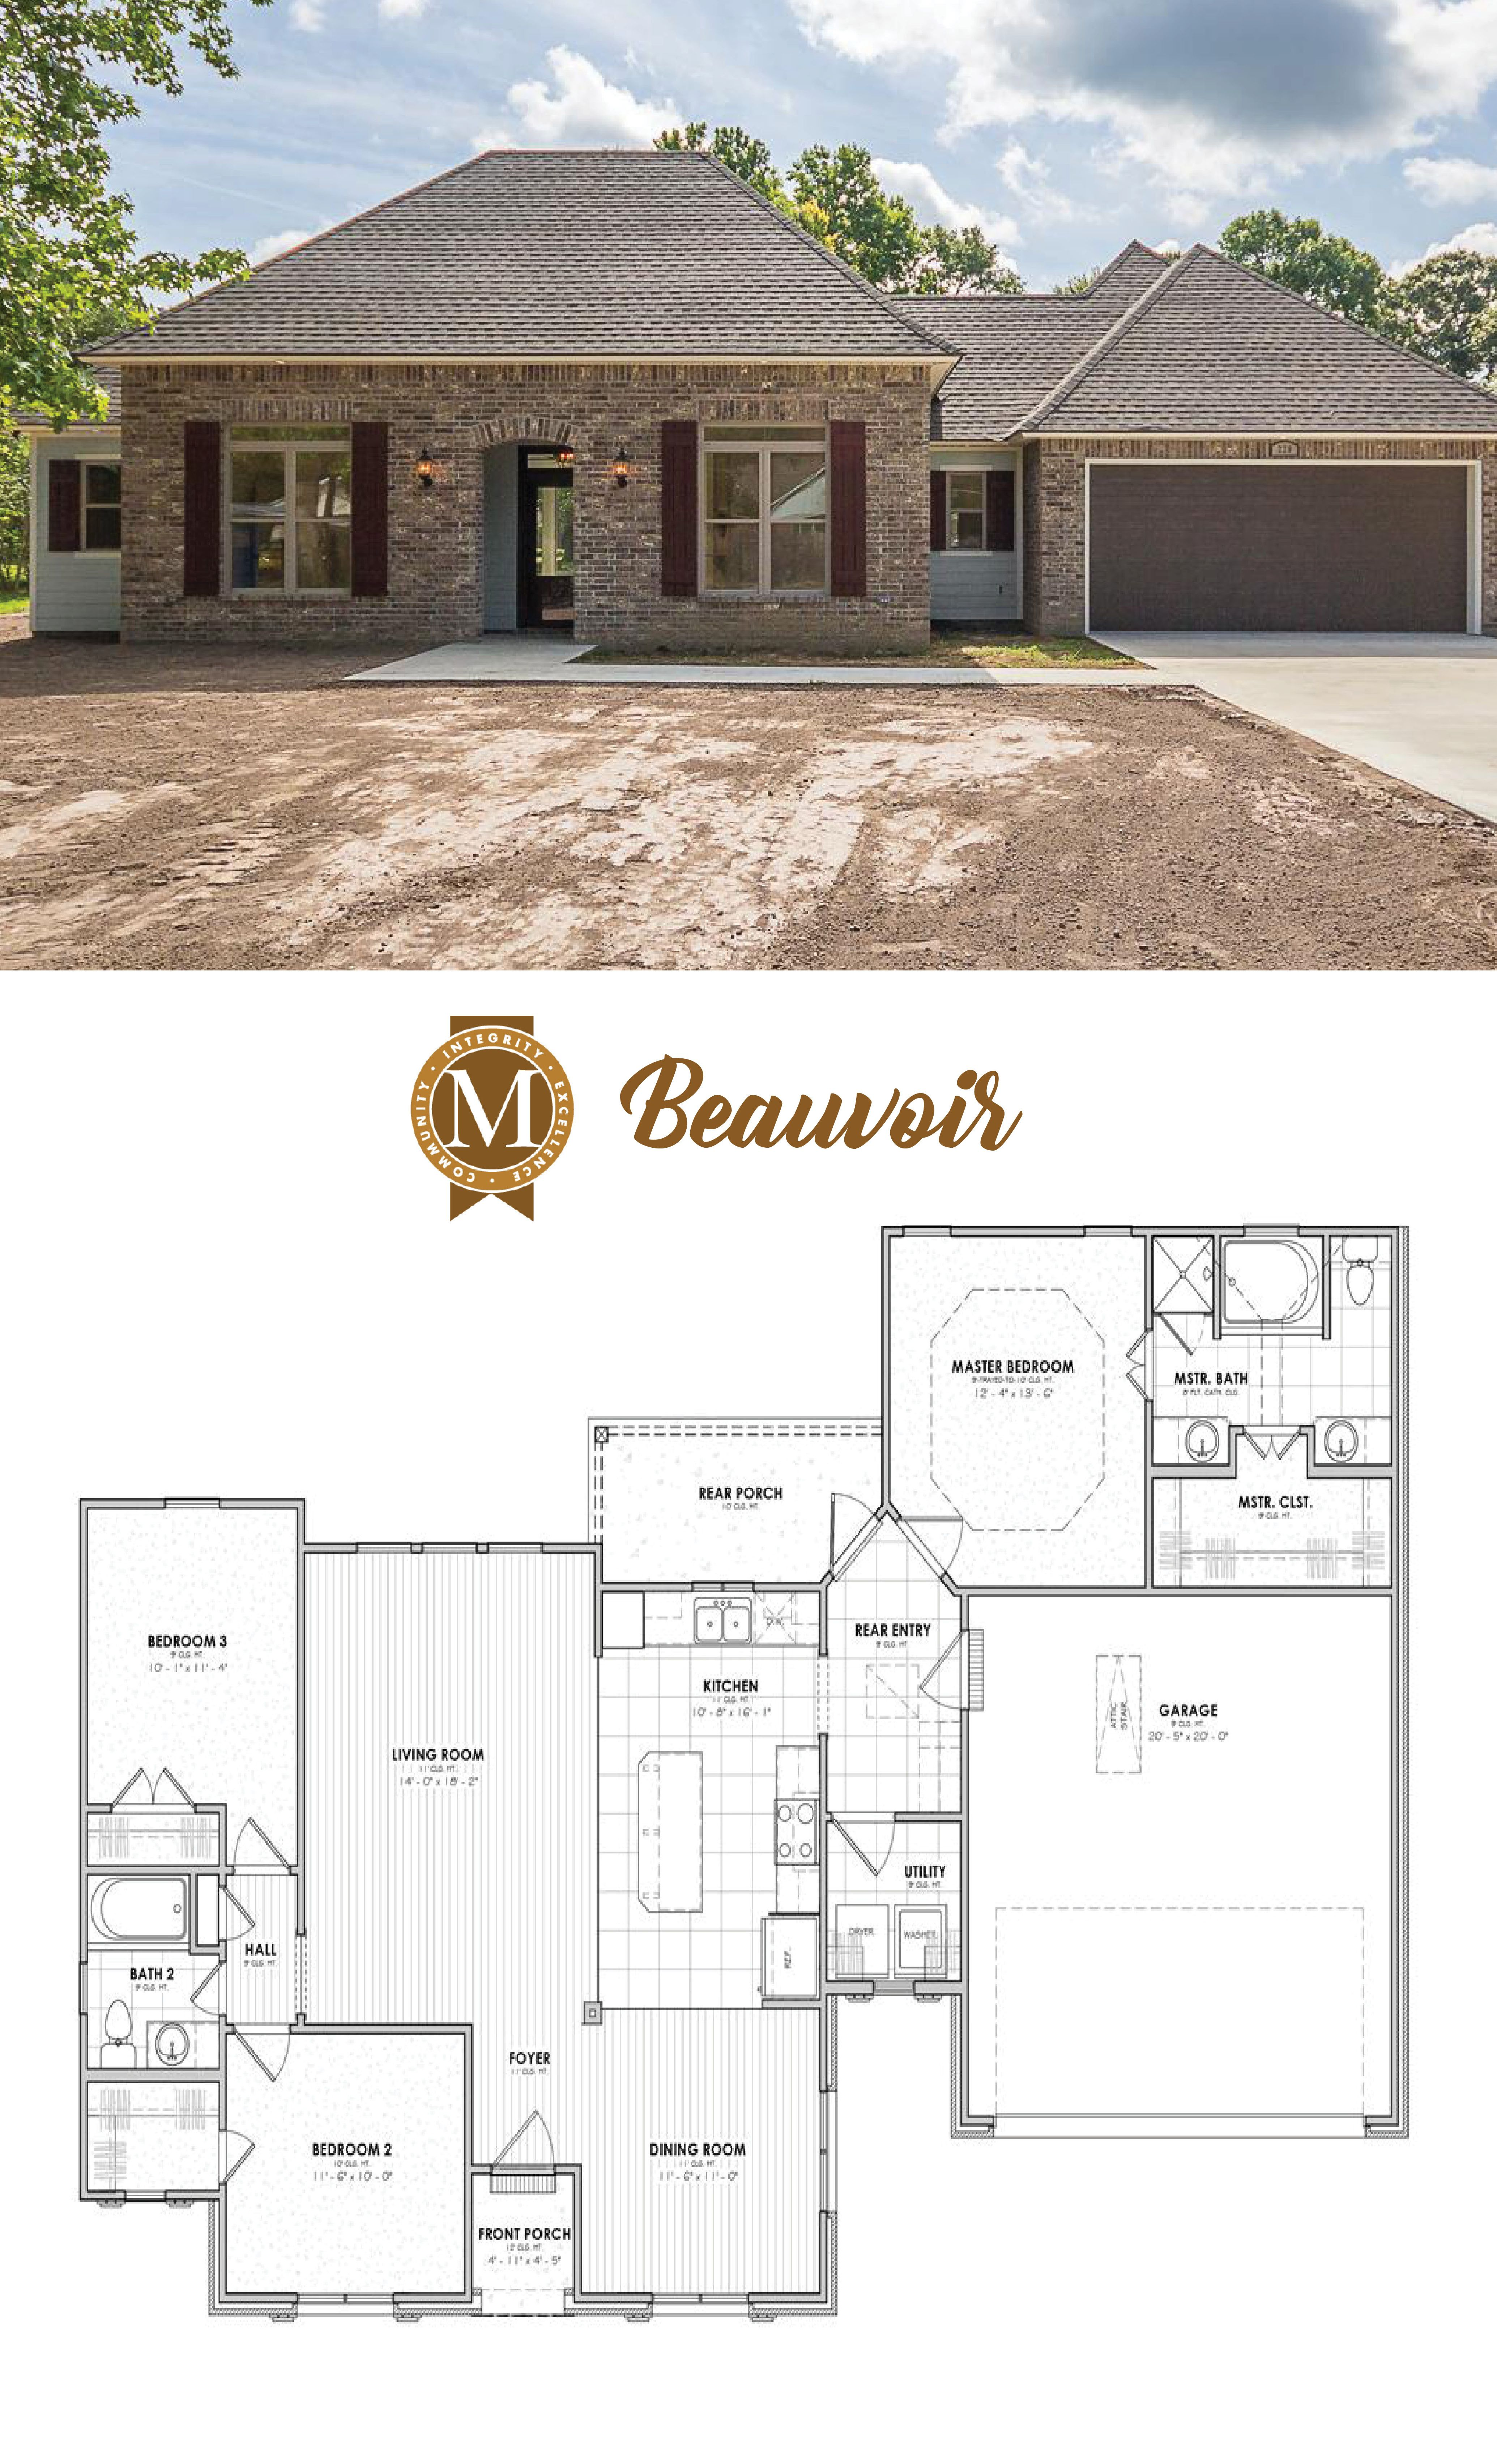 Beauvoir Floor Plan Elevation Heritage Living Square Feet 1601 Bedrooms 3 Bathrooms 2 Special Features Wood Til New House Plans New Homes House Plans